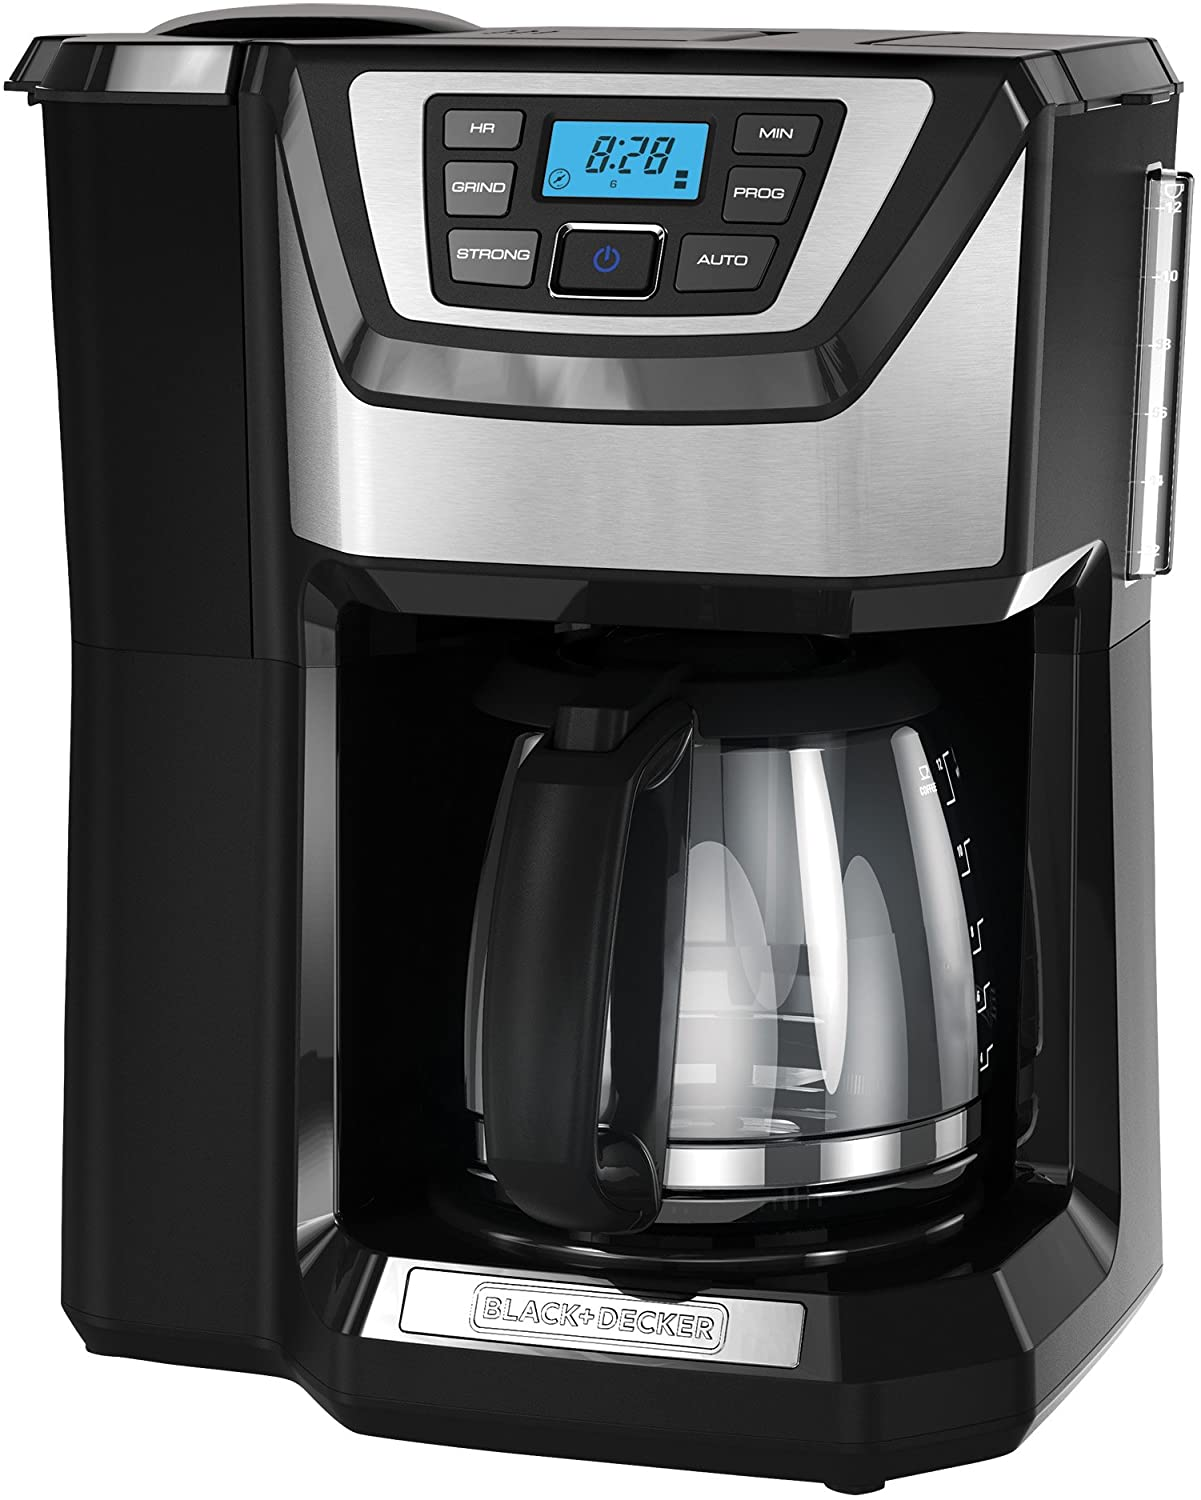 BLACK+DECKER 12-Cup Mill and Brew Coffeemaker, Black, CM5000B by BLACK+DECKER